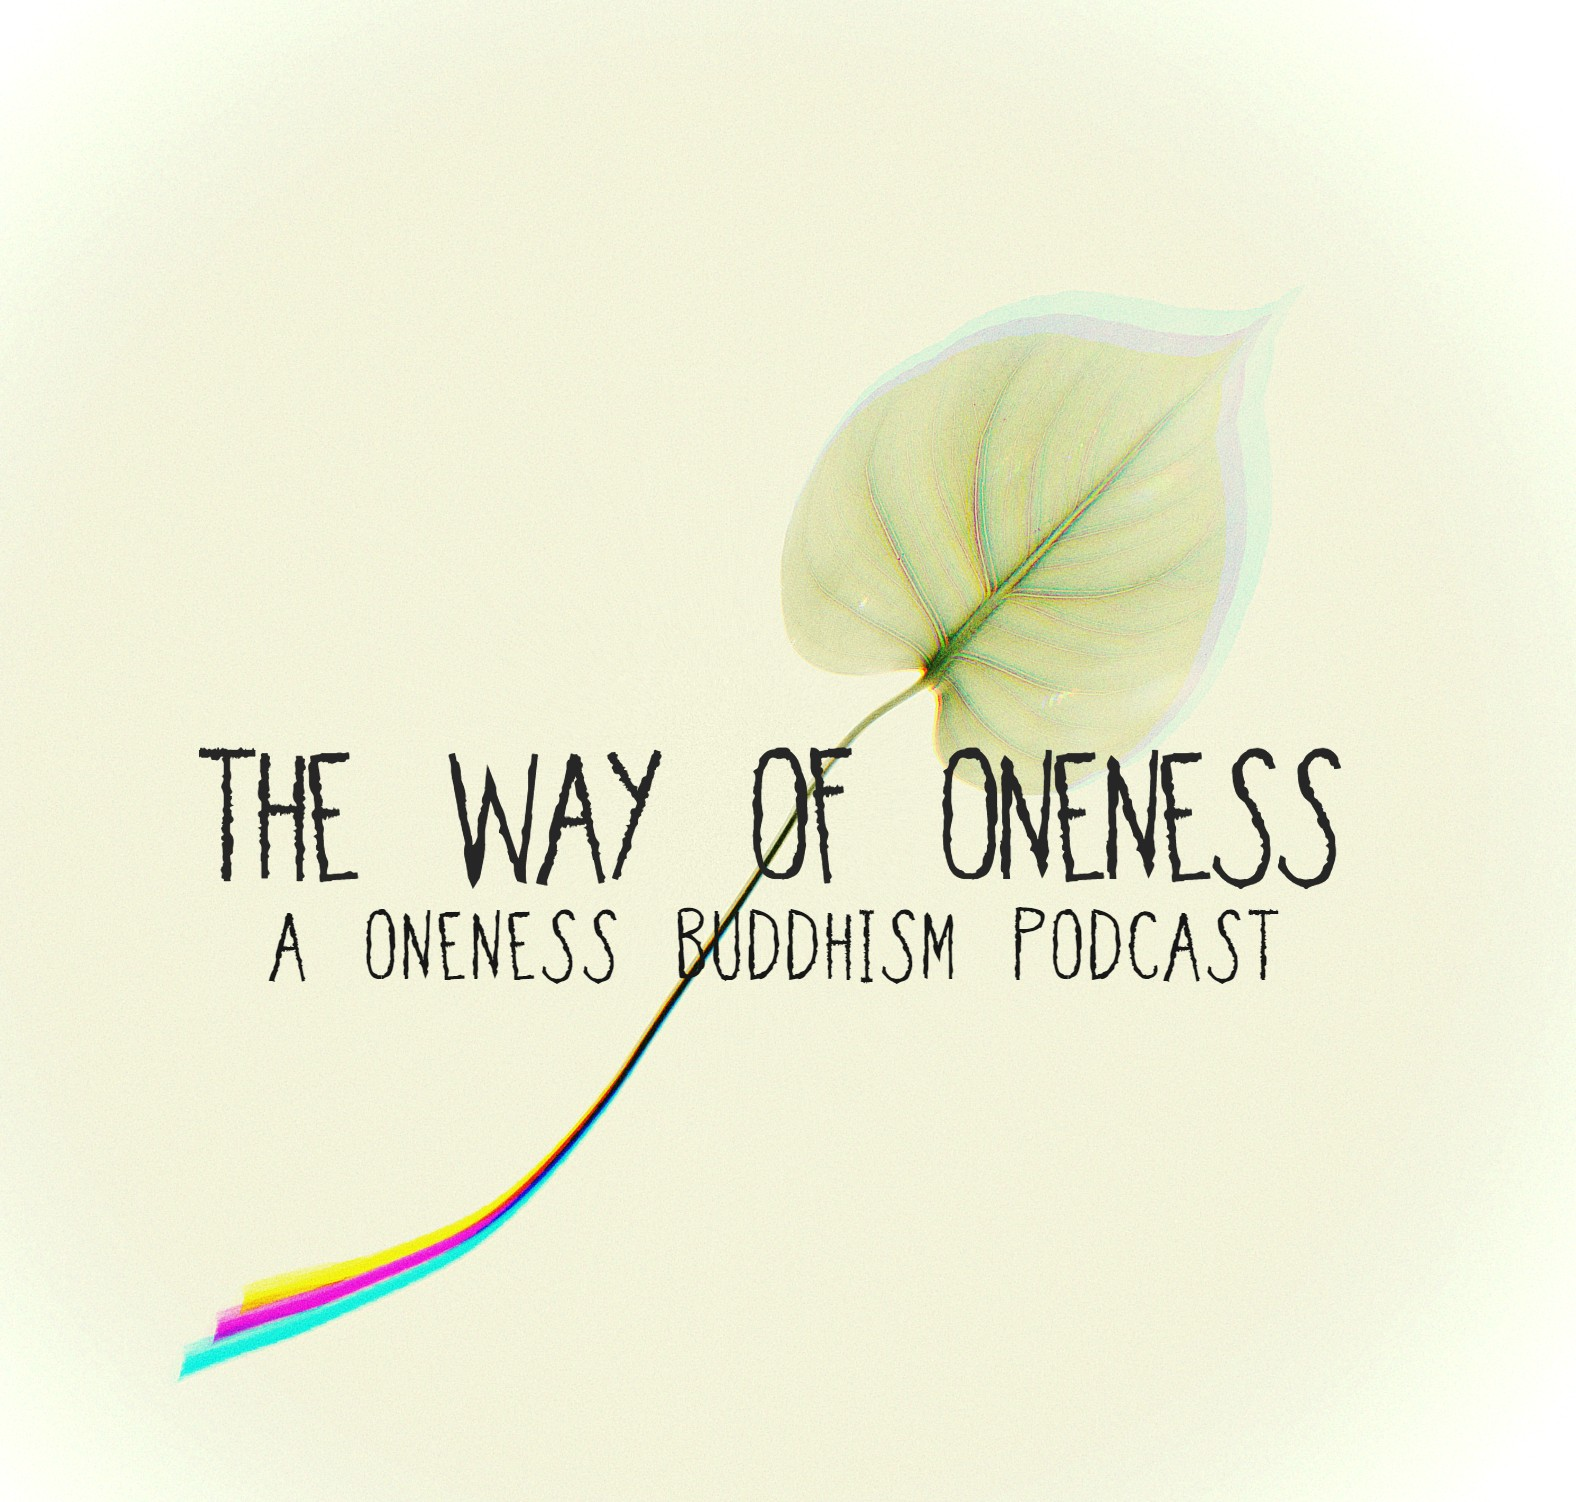 Way of Oneness: A Oneness Buddhism Podcast